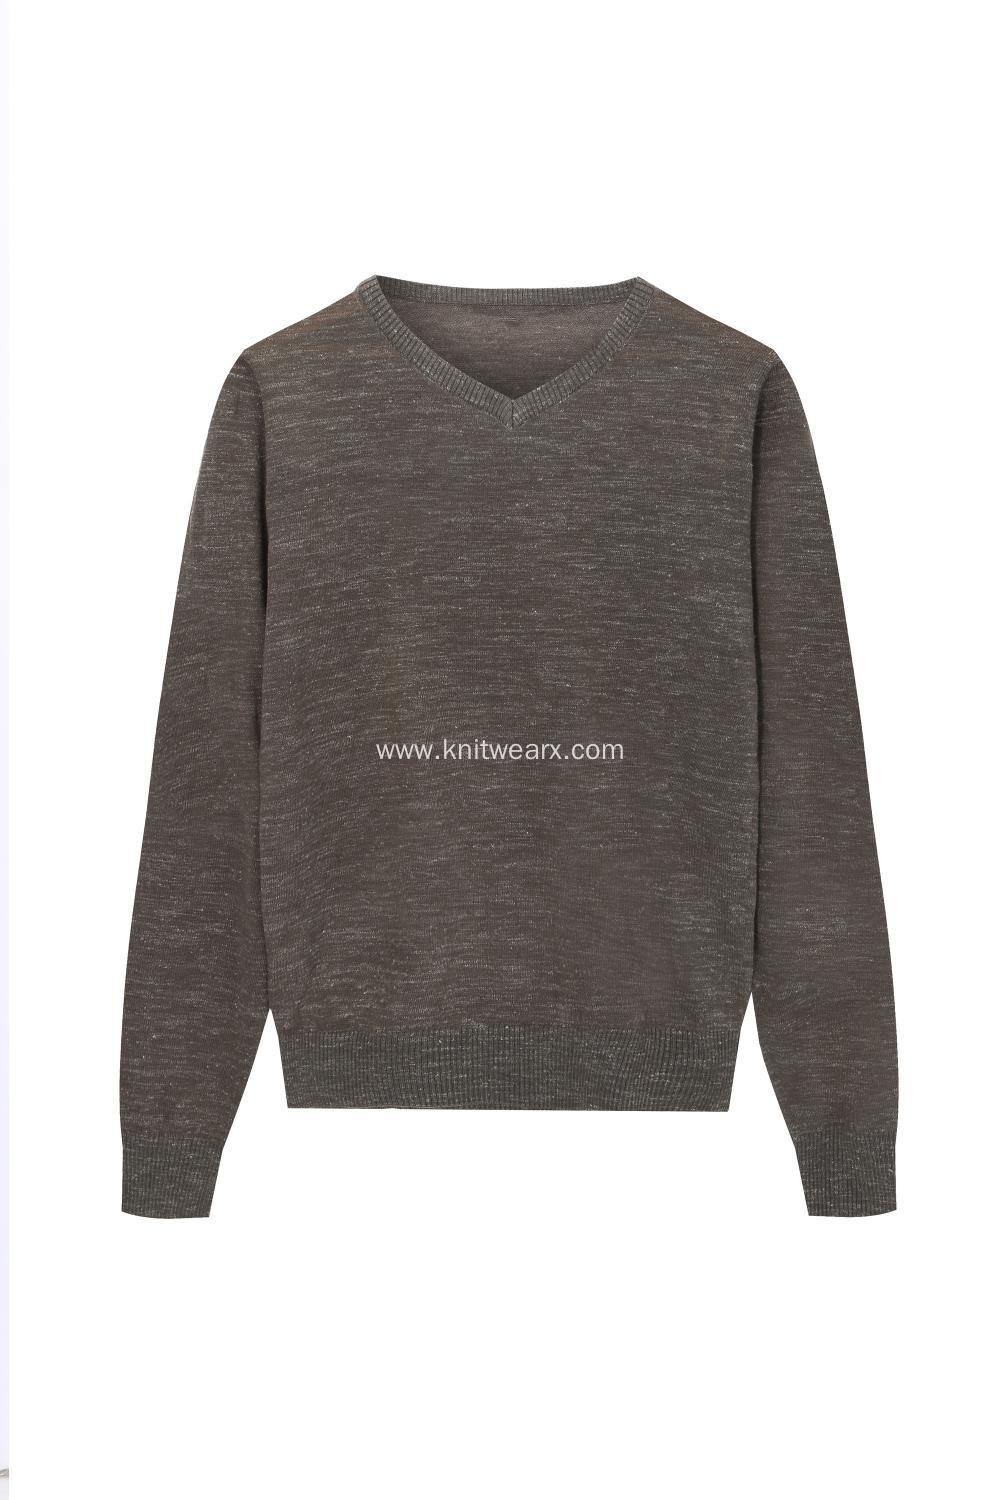 Men's Knitted Ramie/Cotton V-Neck Pullover